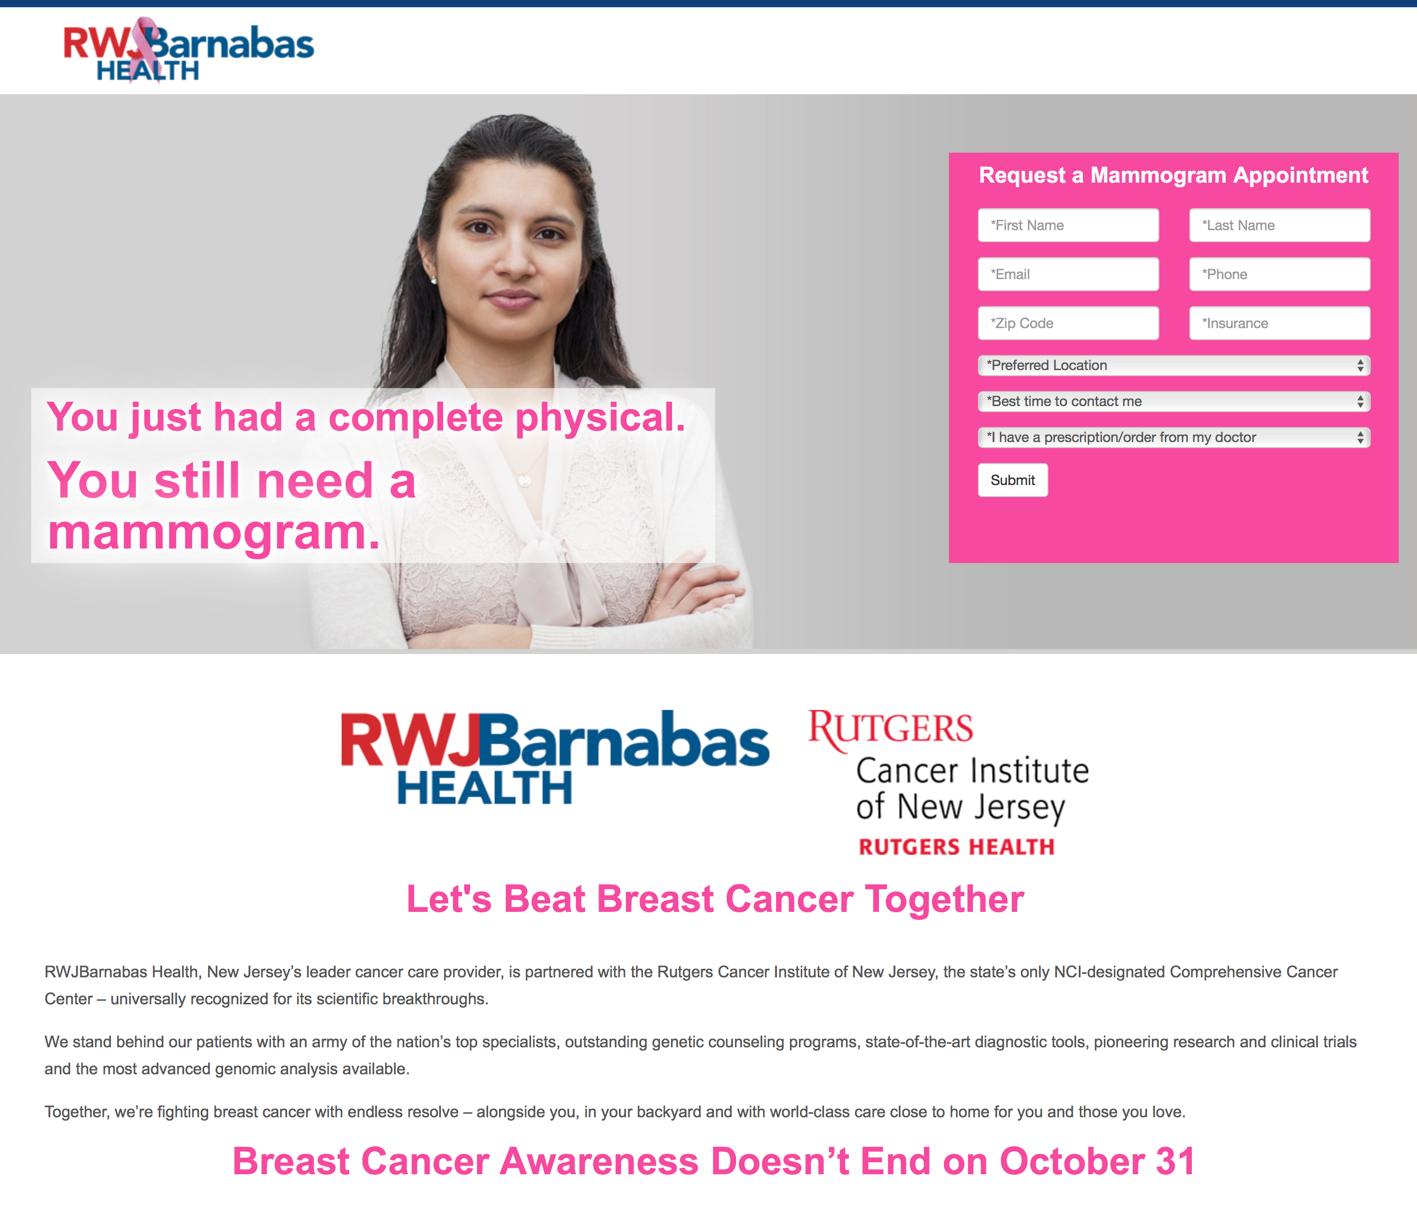 Let's Beat Breast Cancer Together